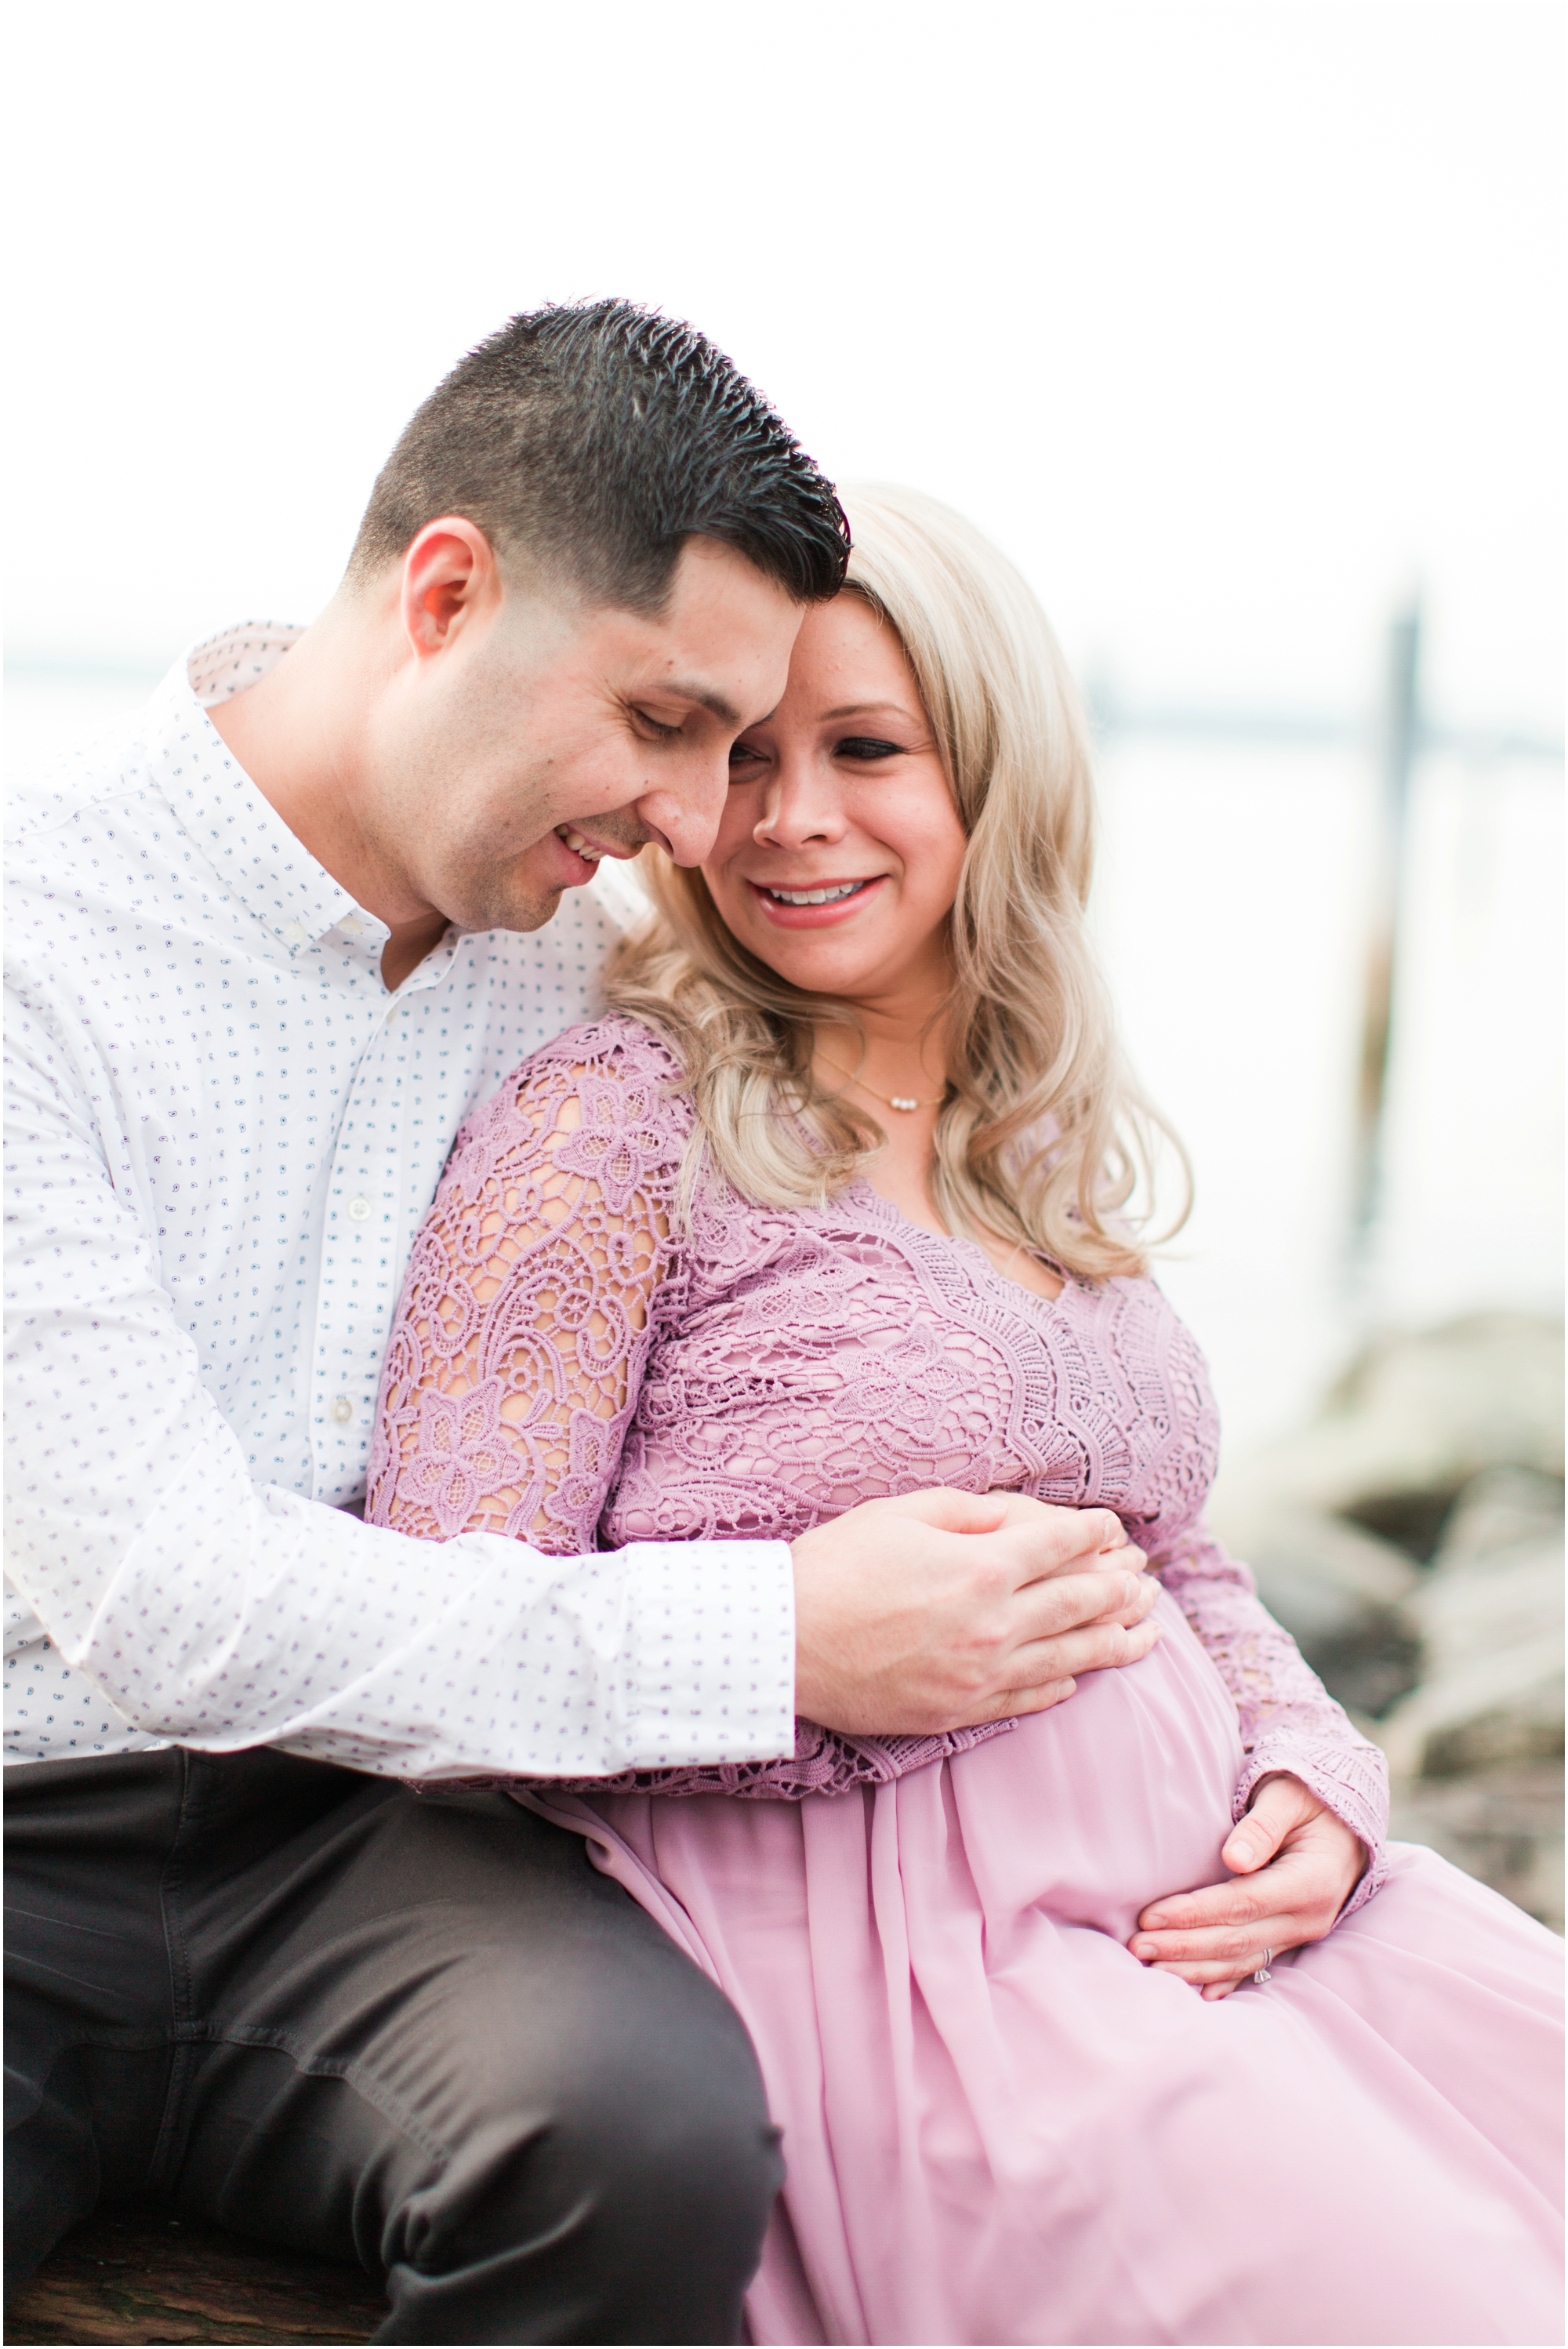 Maternity photos by Briana Calderon Photography based in the Greater Seattle & Tacoma, WA_0983.jpg